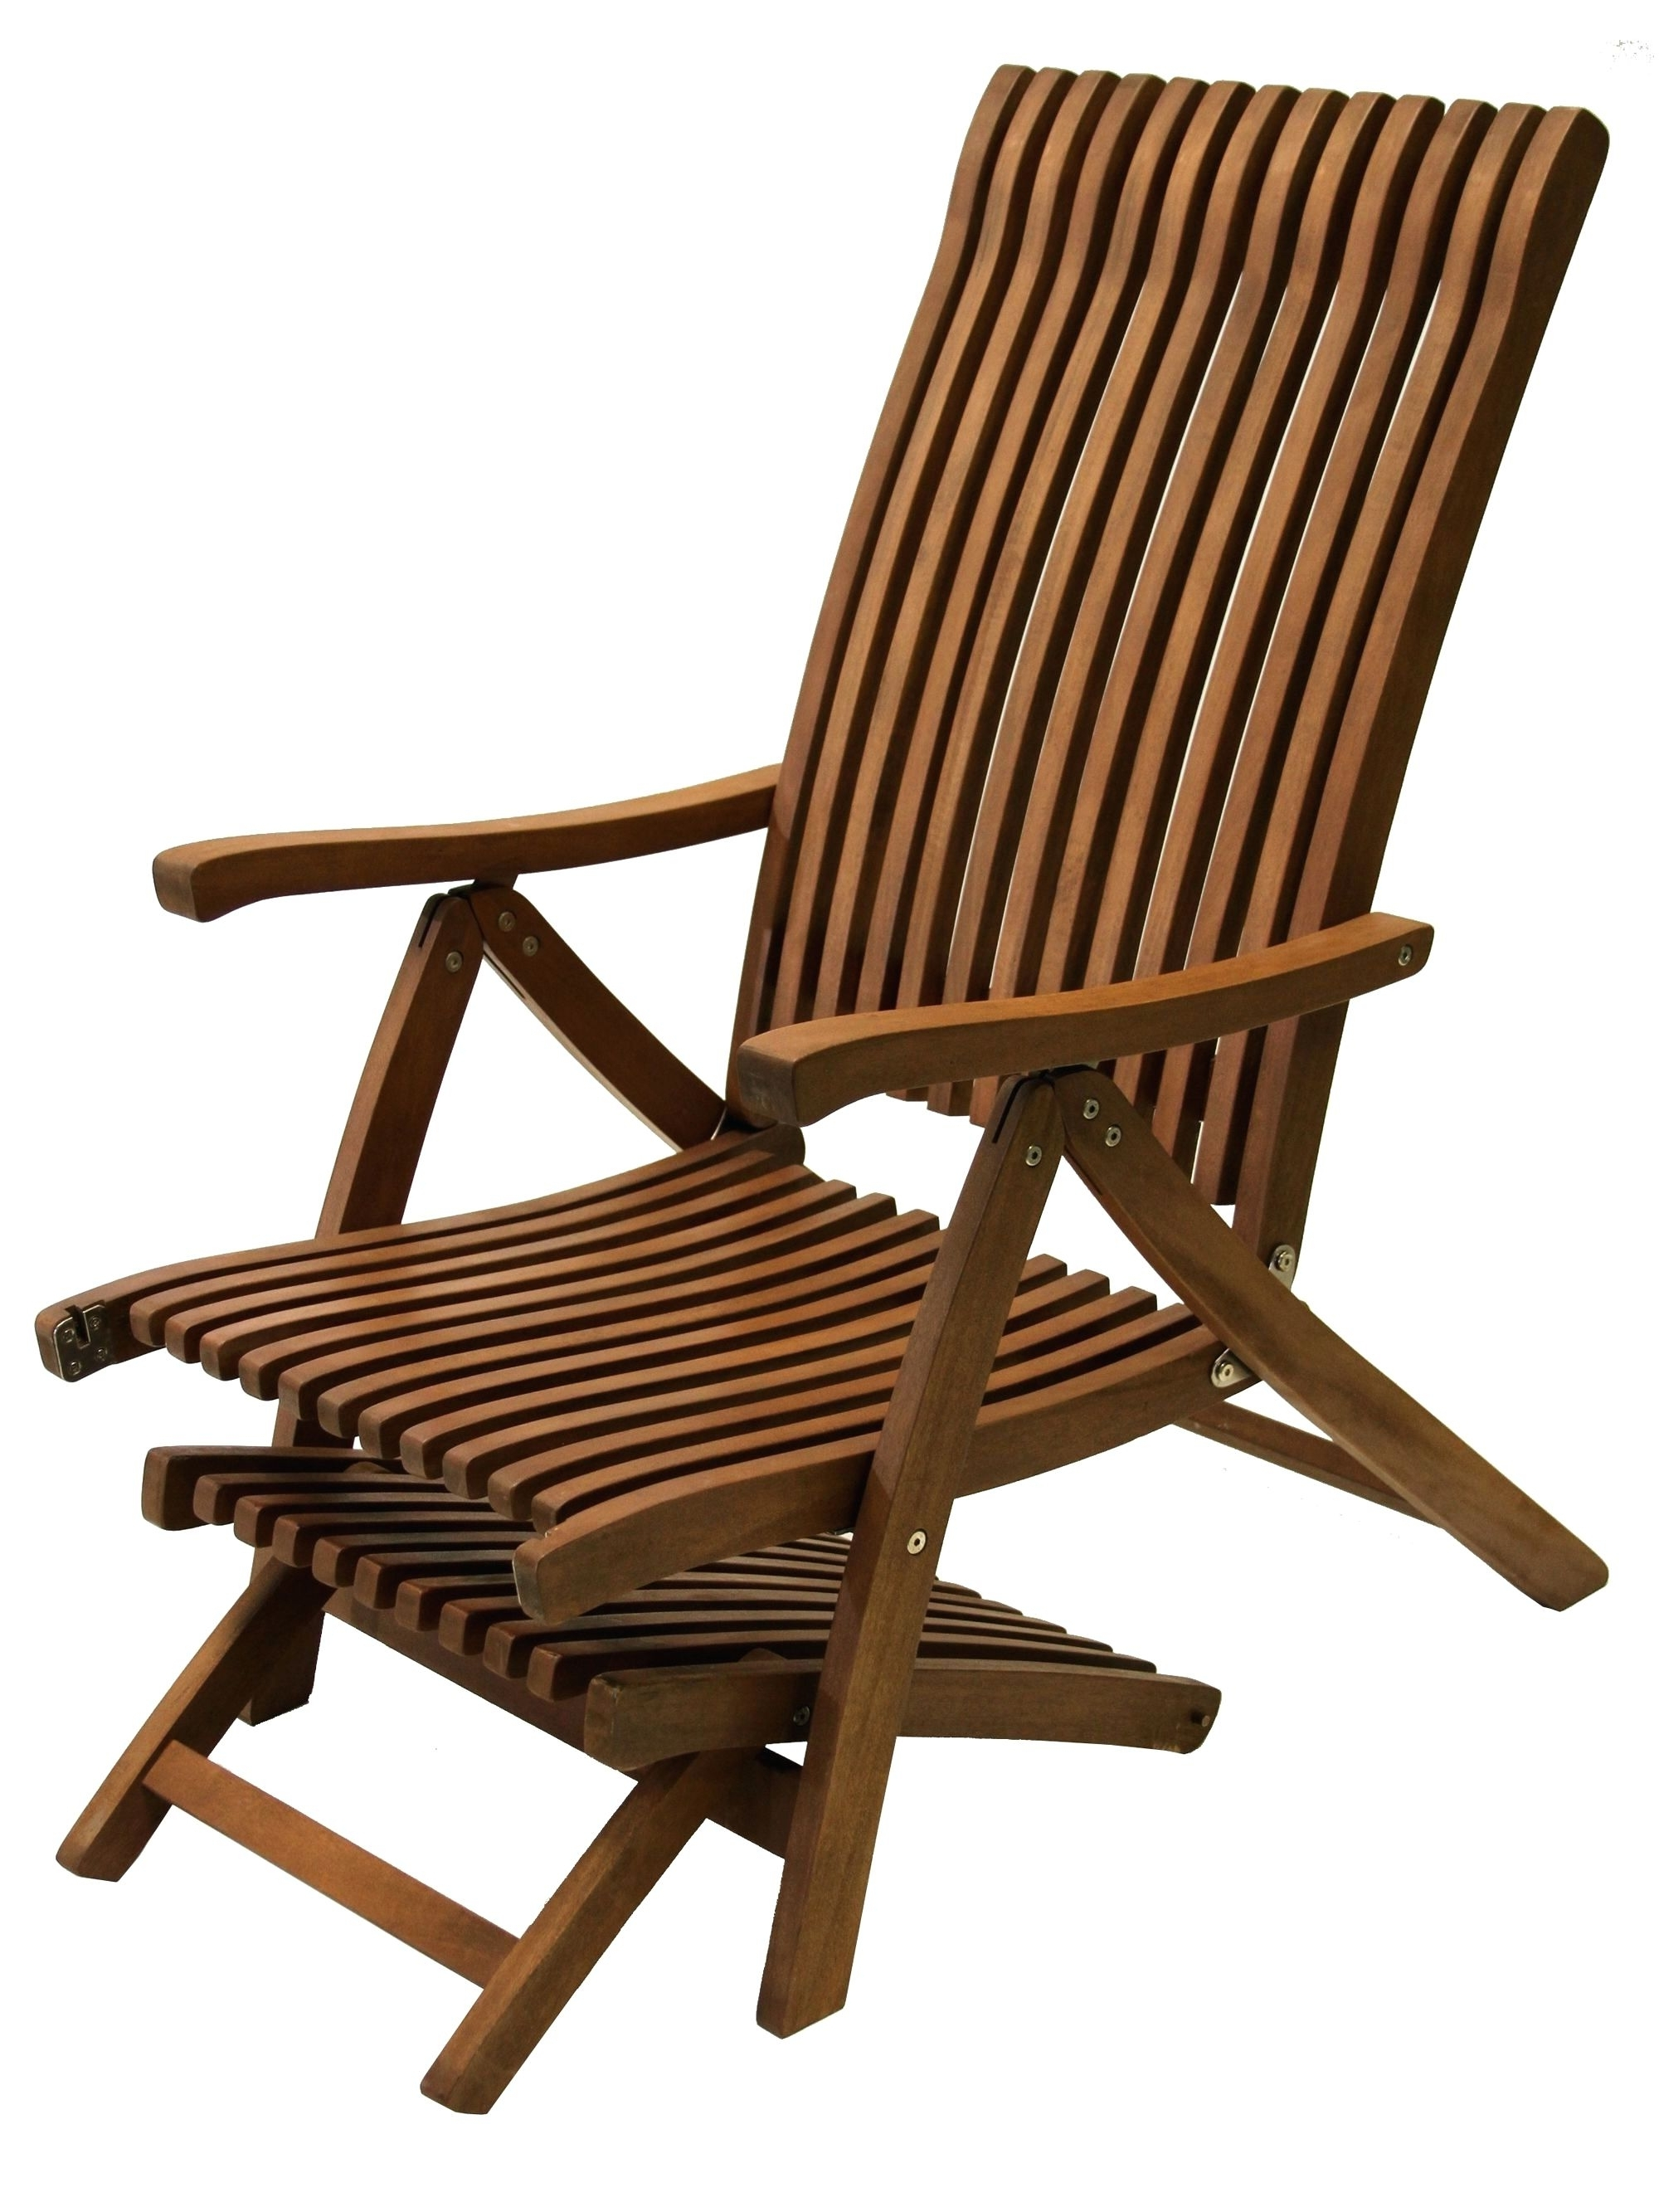 Web Chaise Lounge Chair • Lounge Chairs Ideas Regarding Current Web Chaise Lounge Lawn Chairs (View 7 of 15)